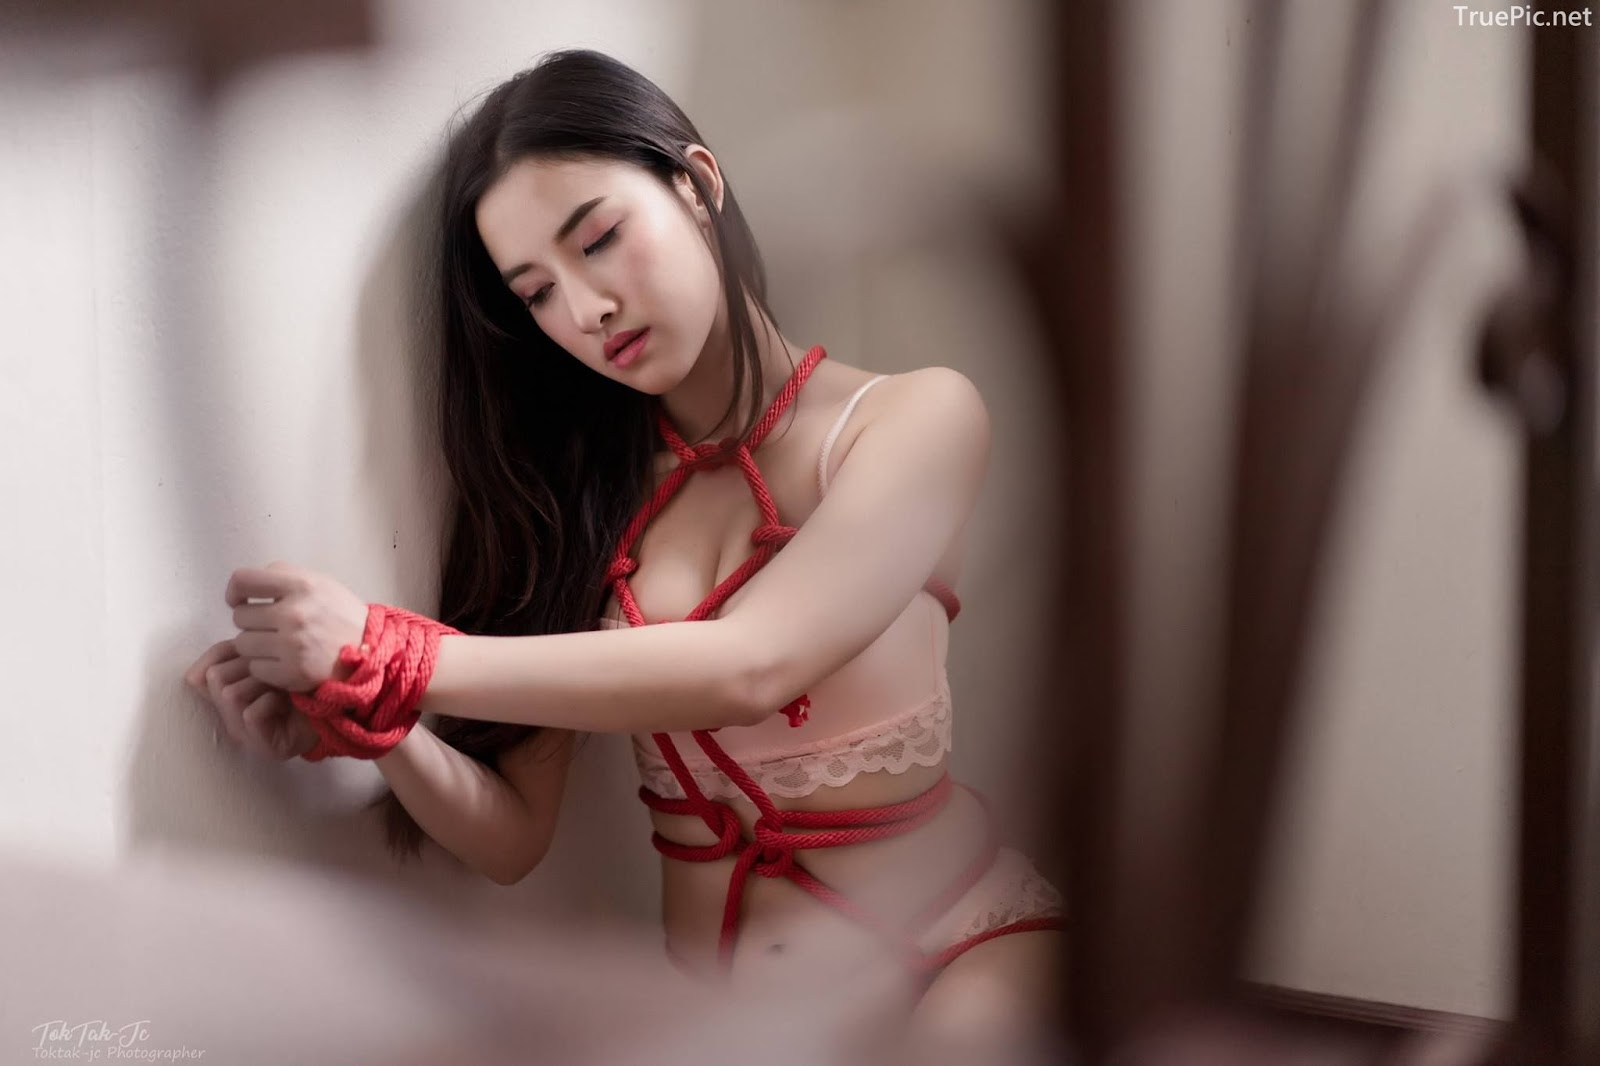 Thailand sexy model Ploywarin Tippakorn - Escape from captivity - Picture 1